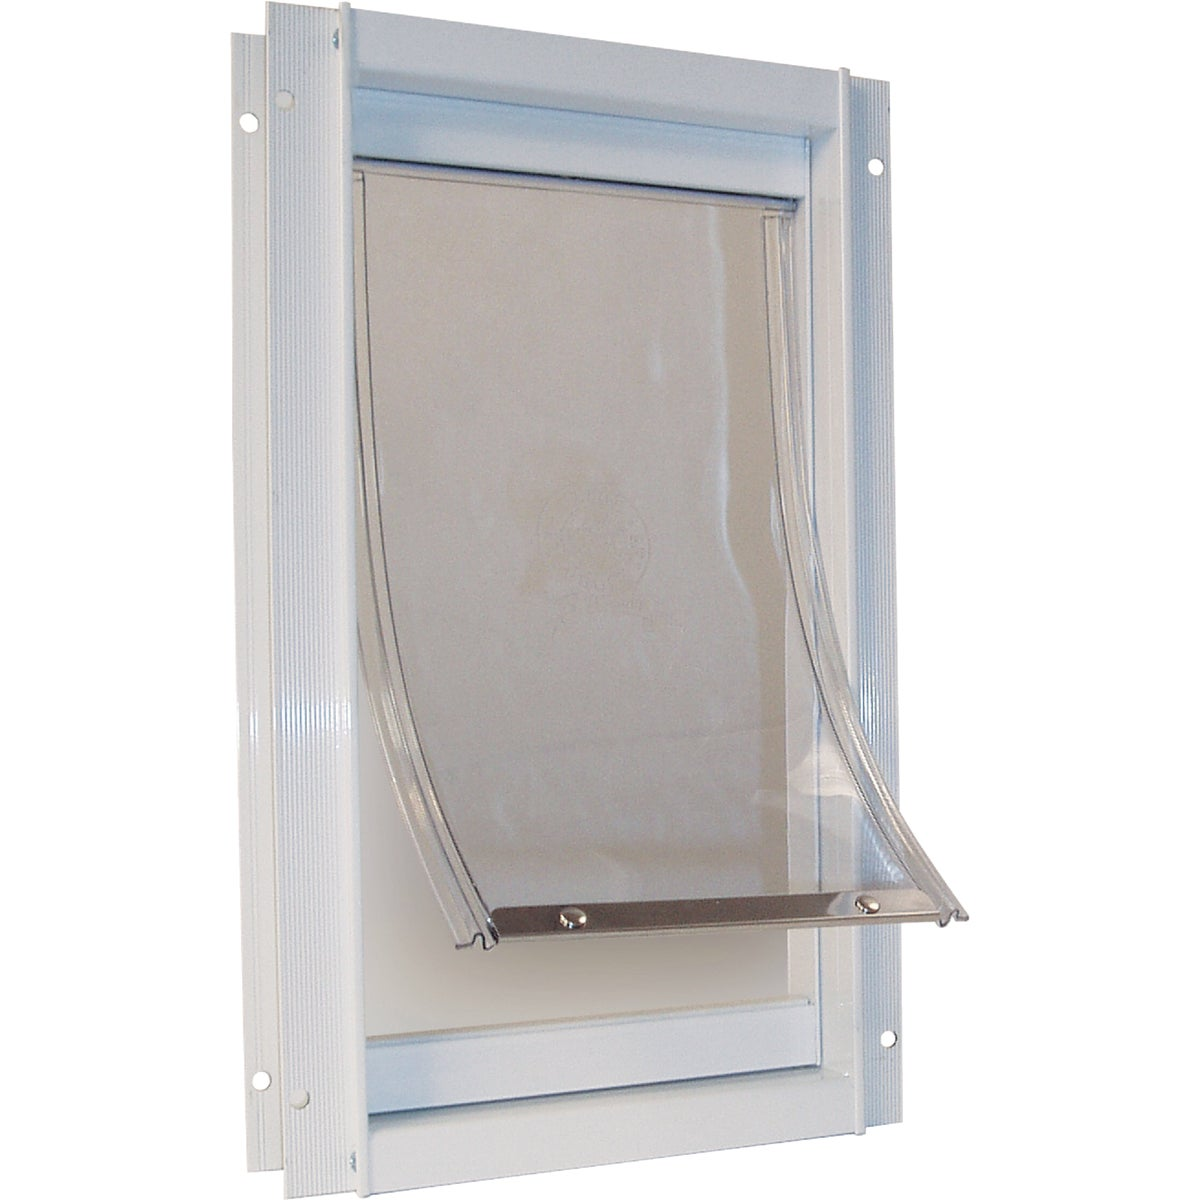 XLARGE ALUMINUM PET DOOR - DDXLW by Ideal Pet Products